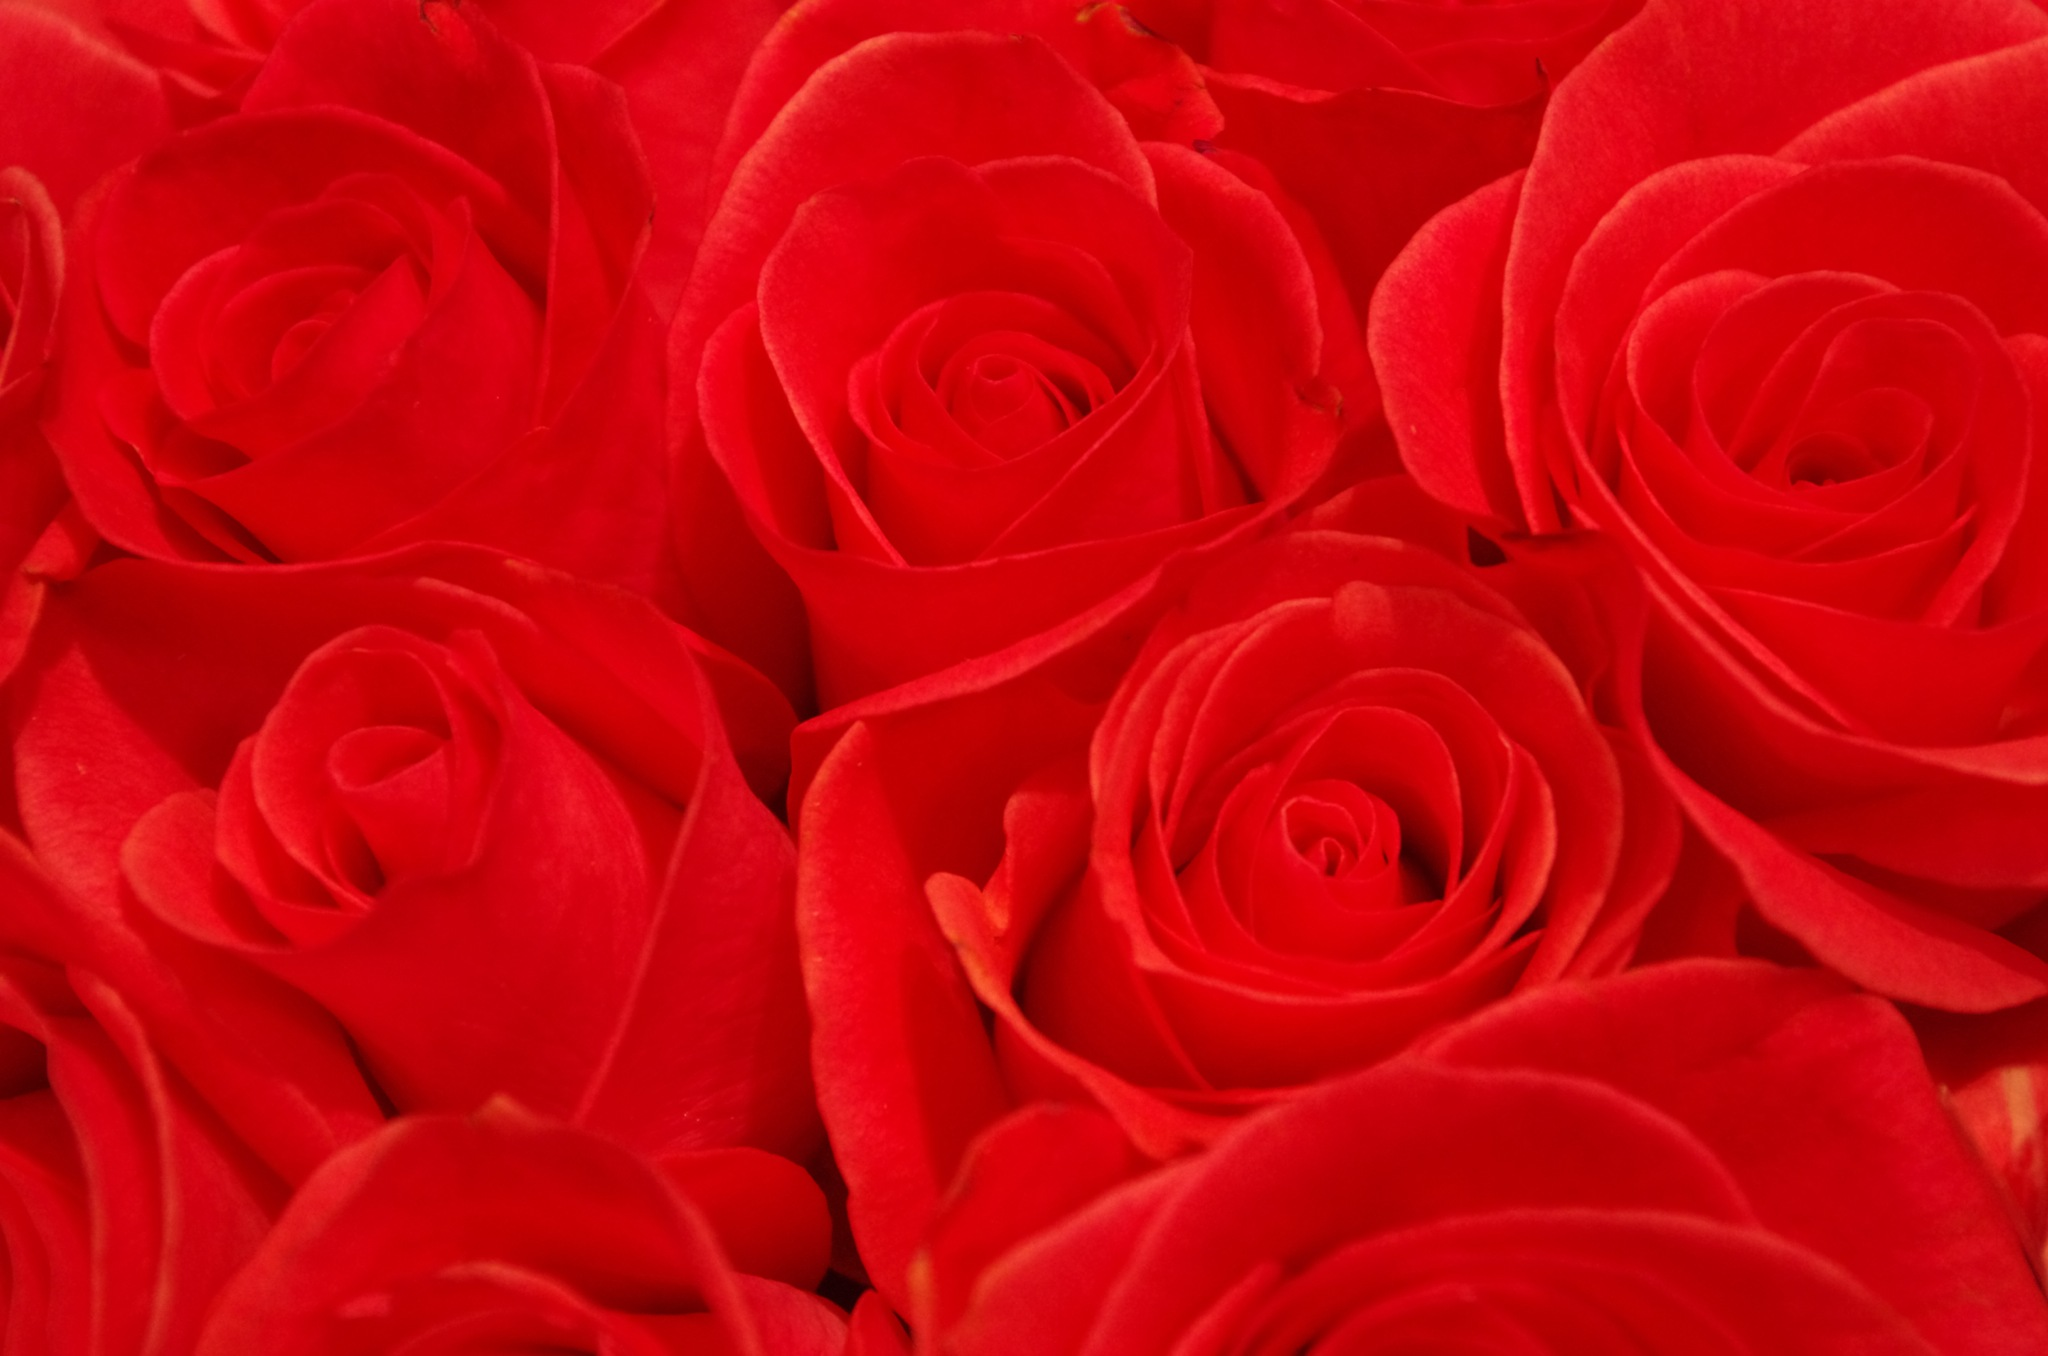 Roses are red by denise.bouvier.3